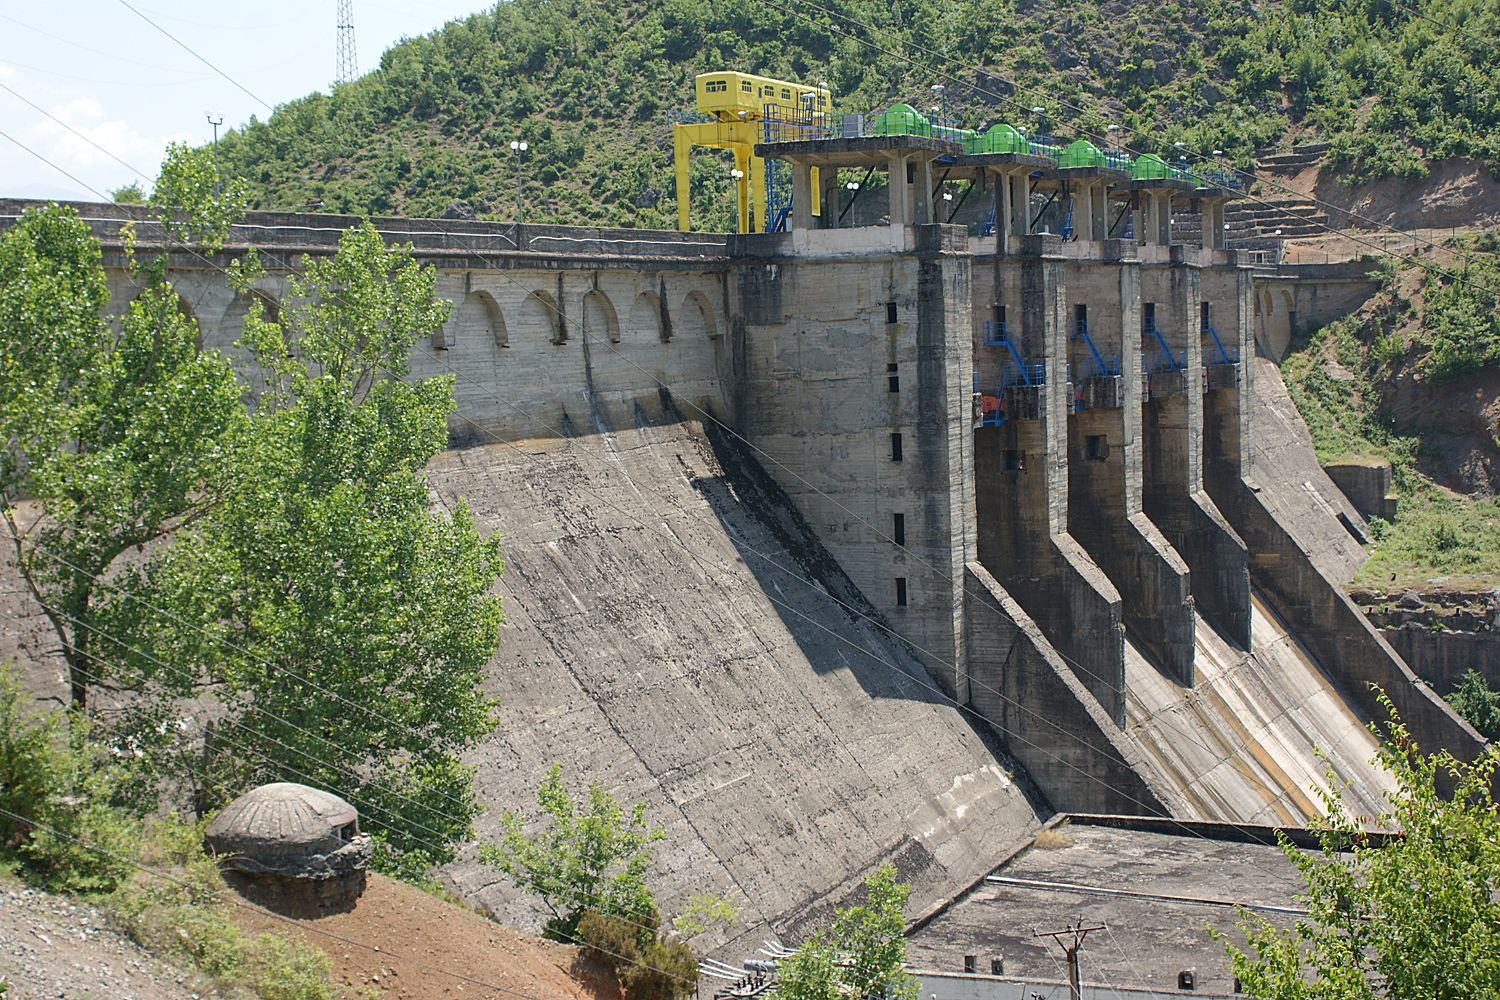 The Ulëz Hydroelectric Power Station